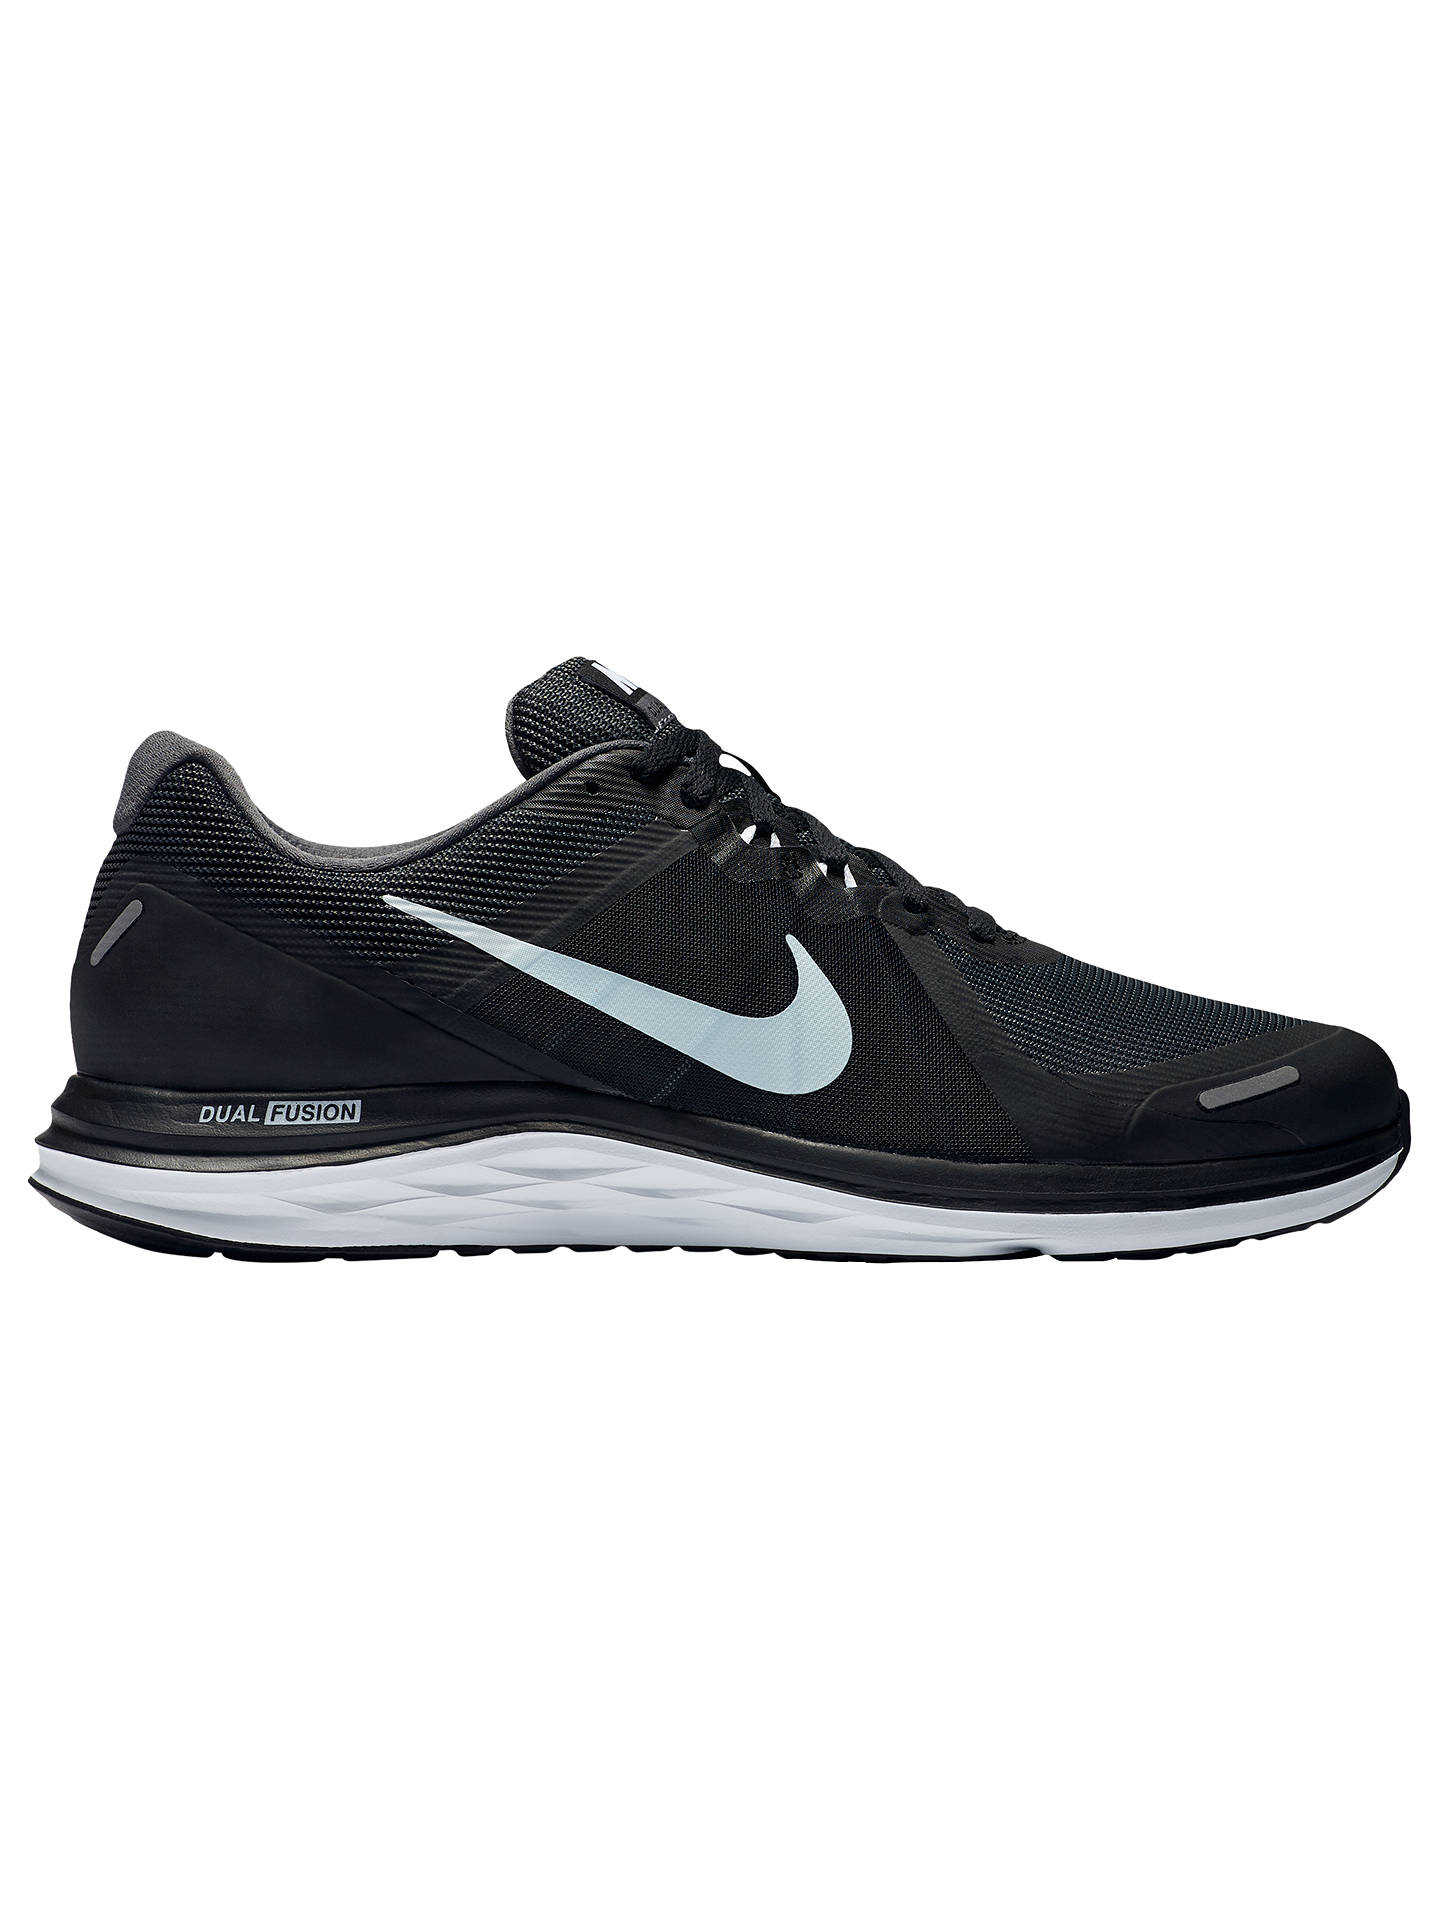 a3188c9f8d3 BuyNike Dual Fusion X 2 Men s Running Shoes